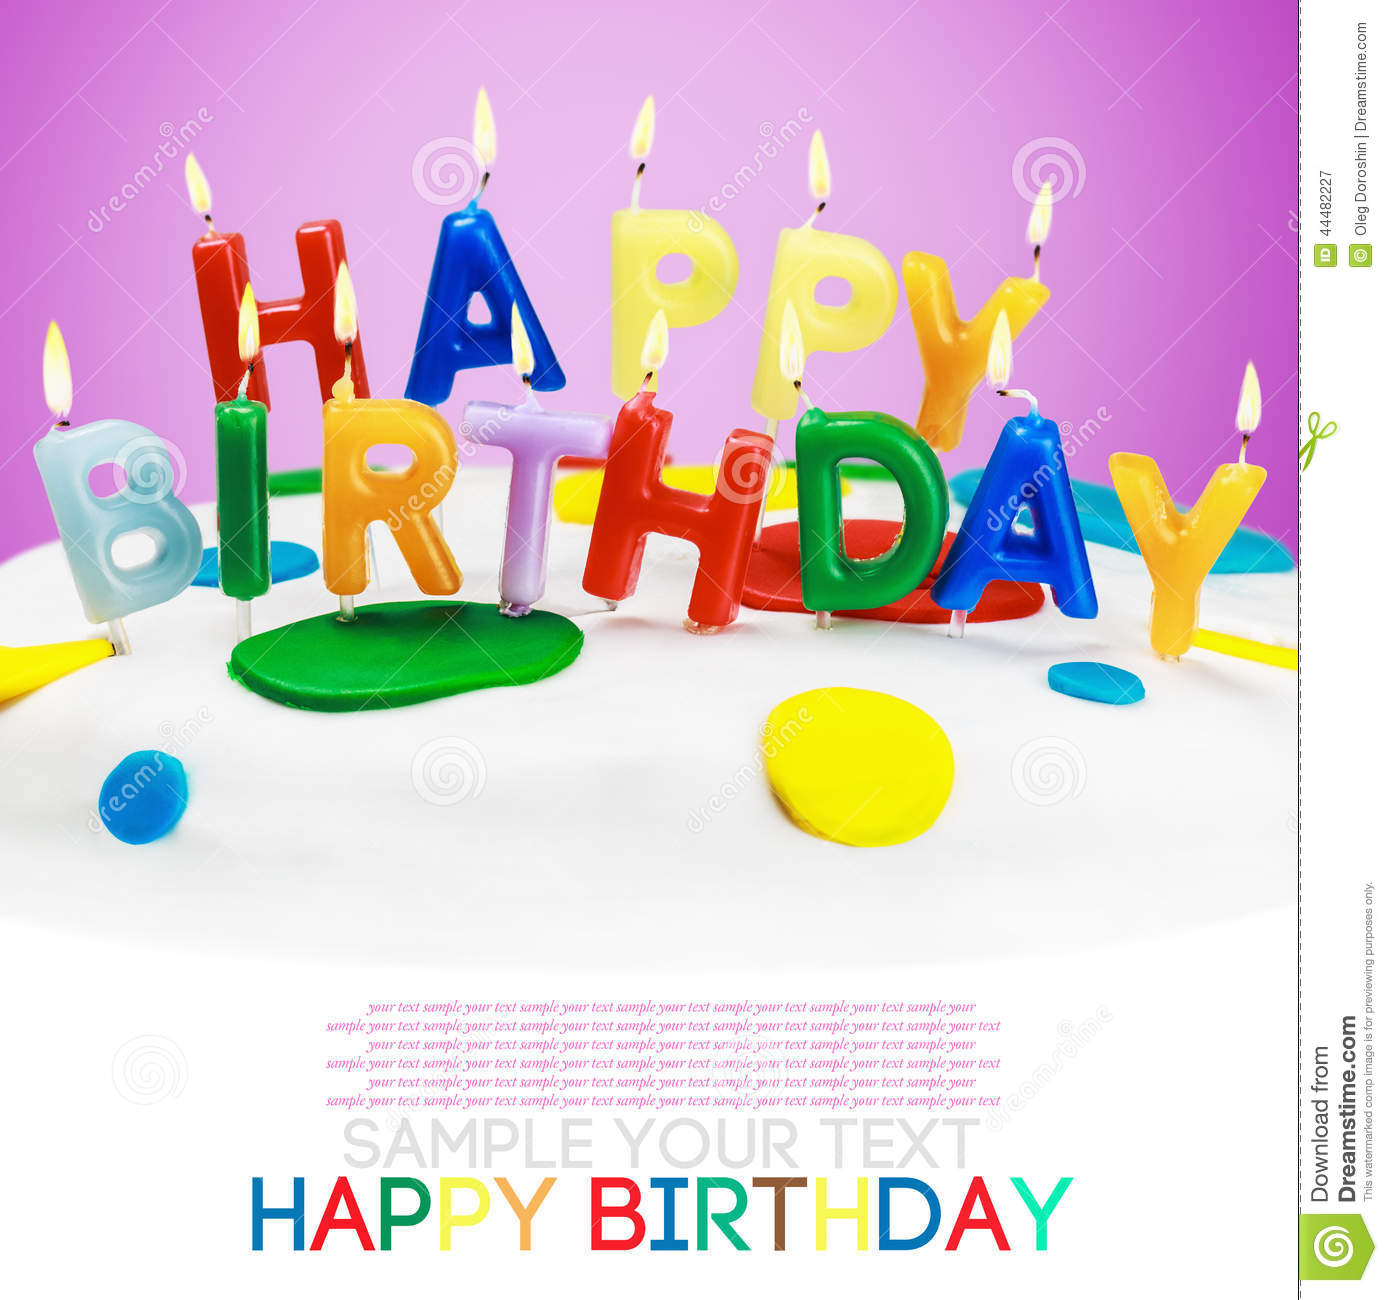 Lighted Candles On A Birthday Cake Bottom White Space For Text Or Congratulations Font From Open Sources Free License Of Use